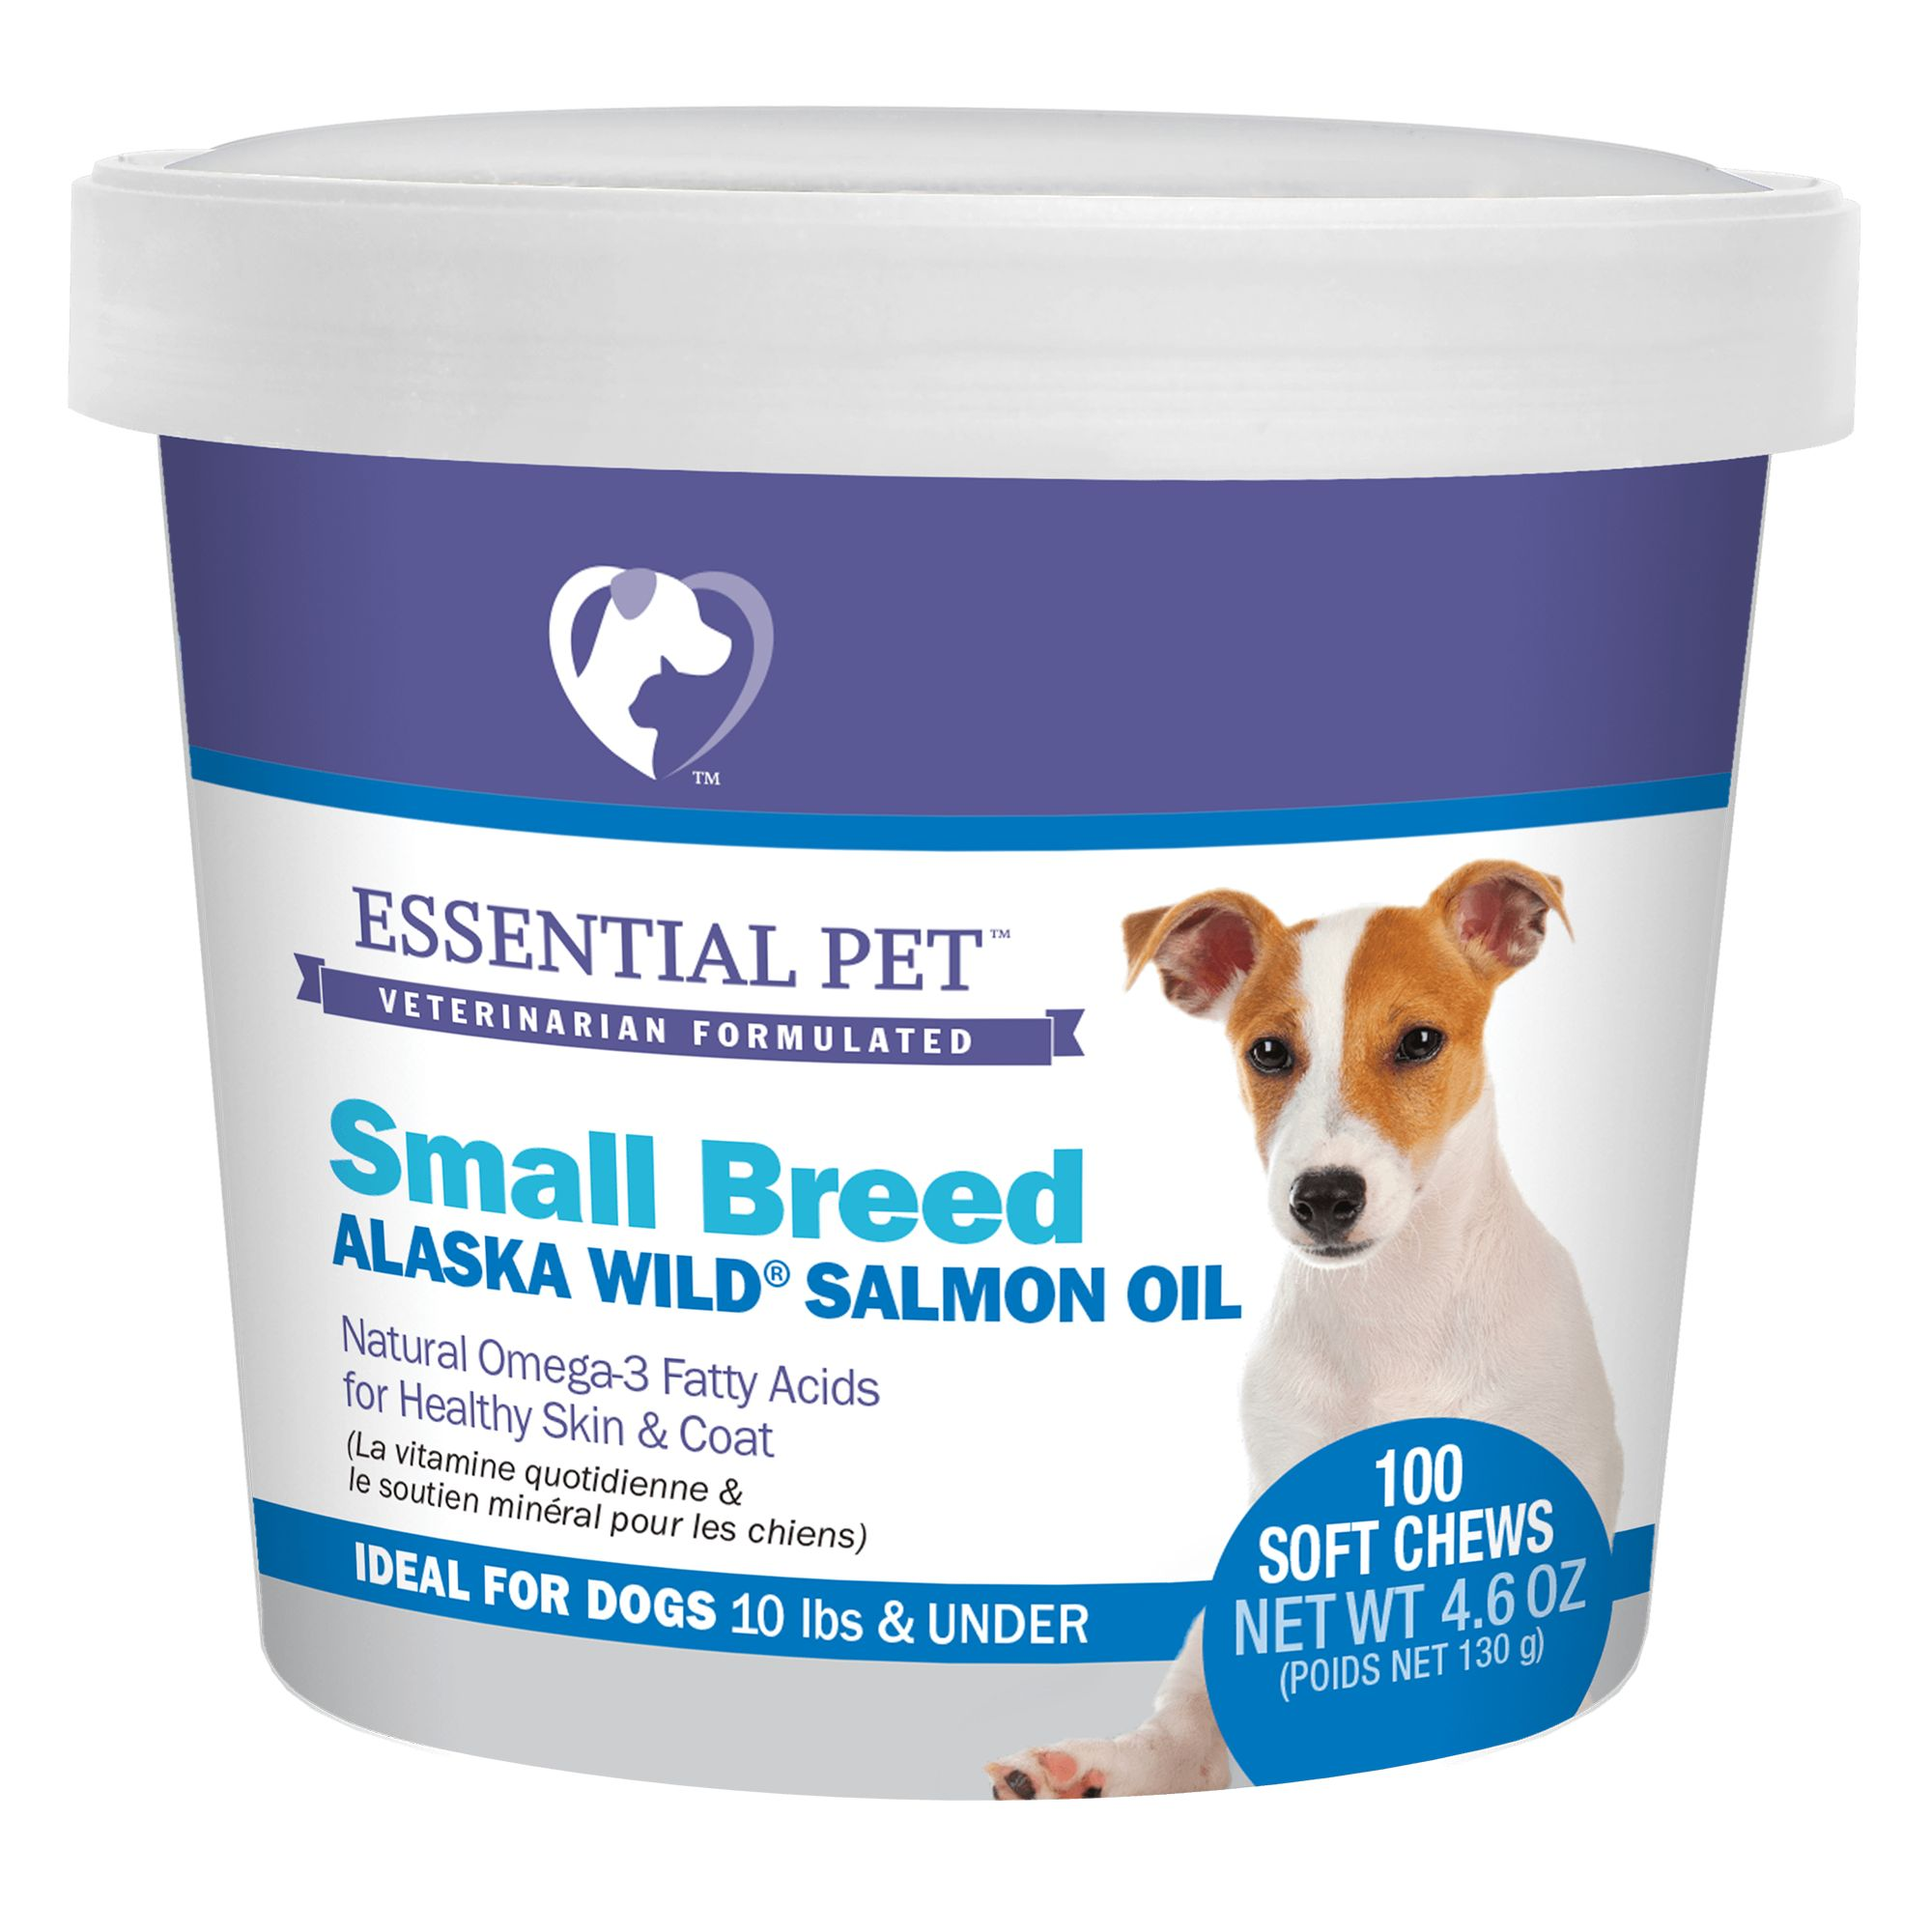 21st Century 10 Lbs And Under Skin And Coat Dog Soft Chews Size 100 Count